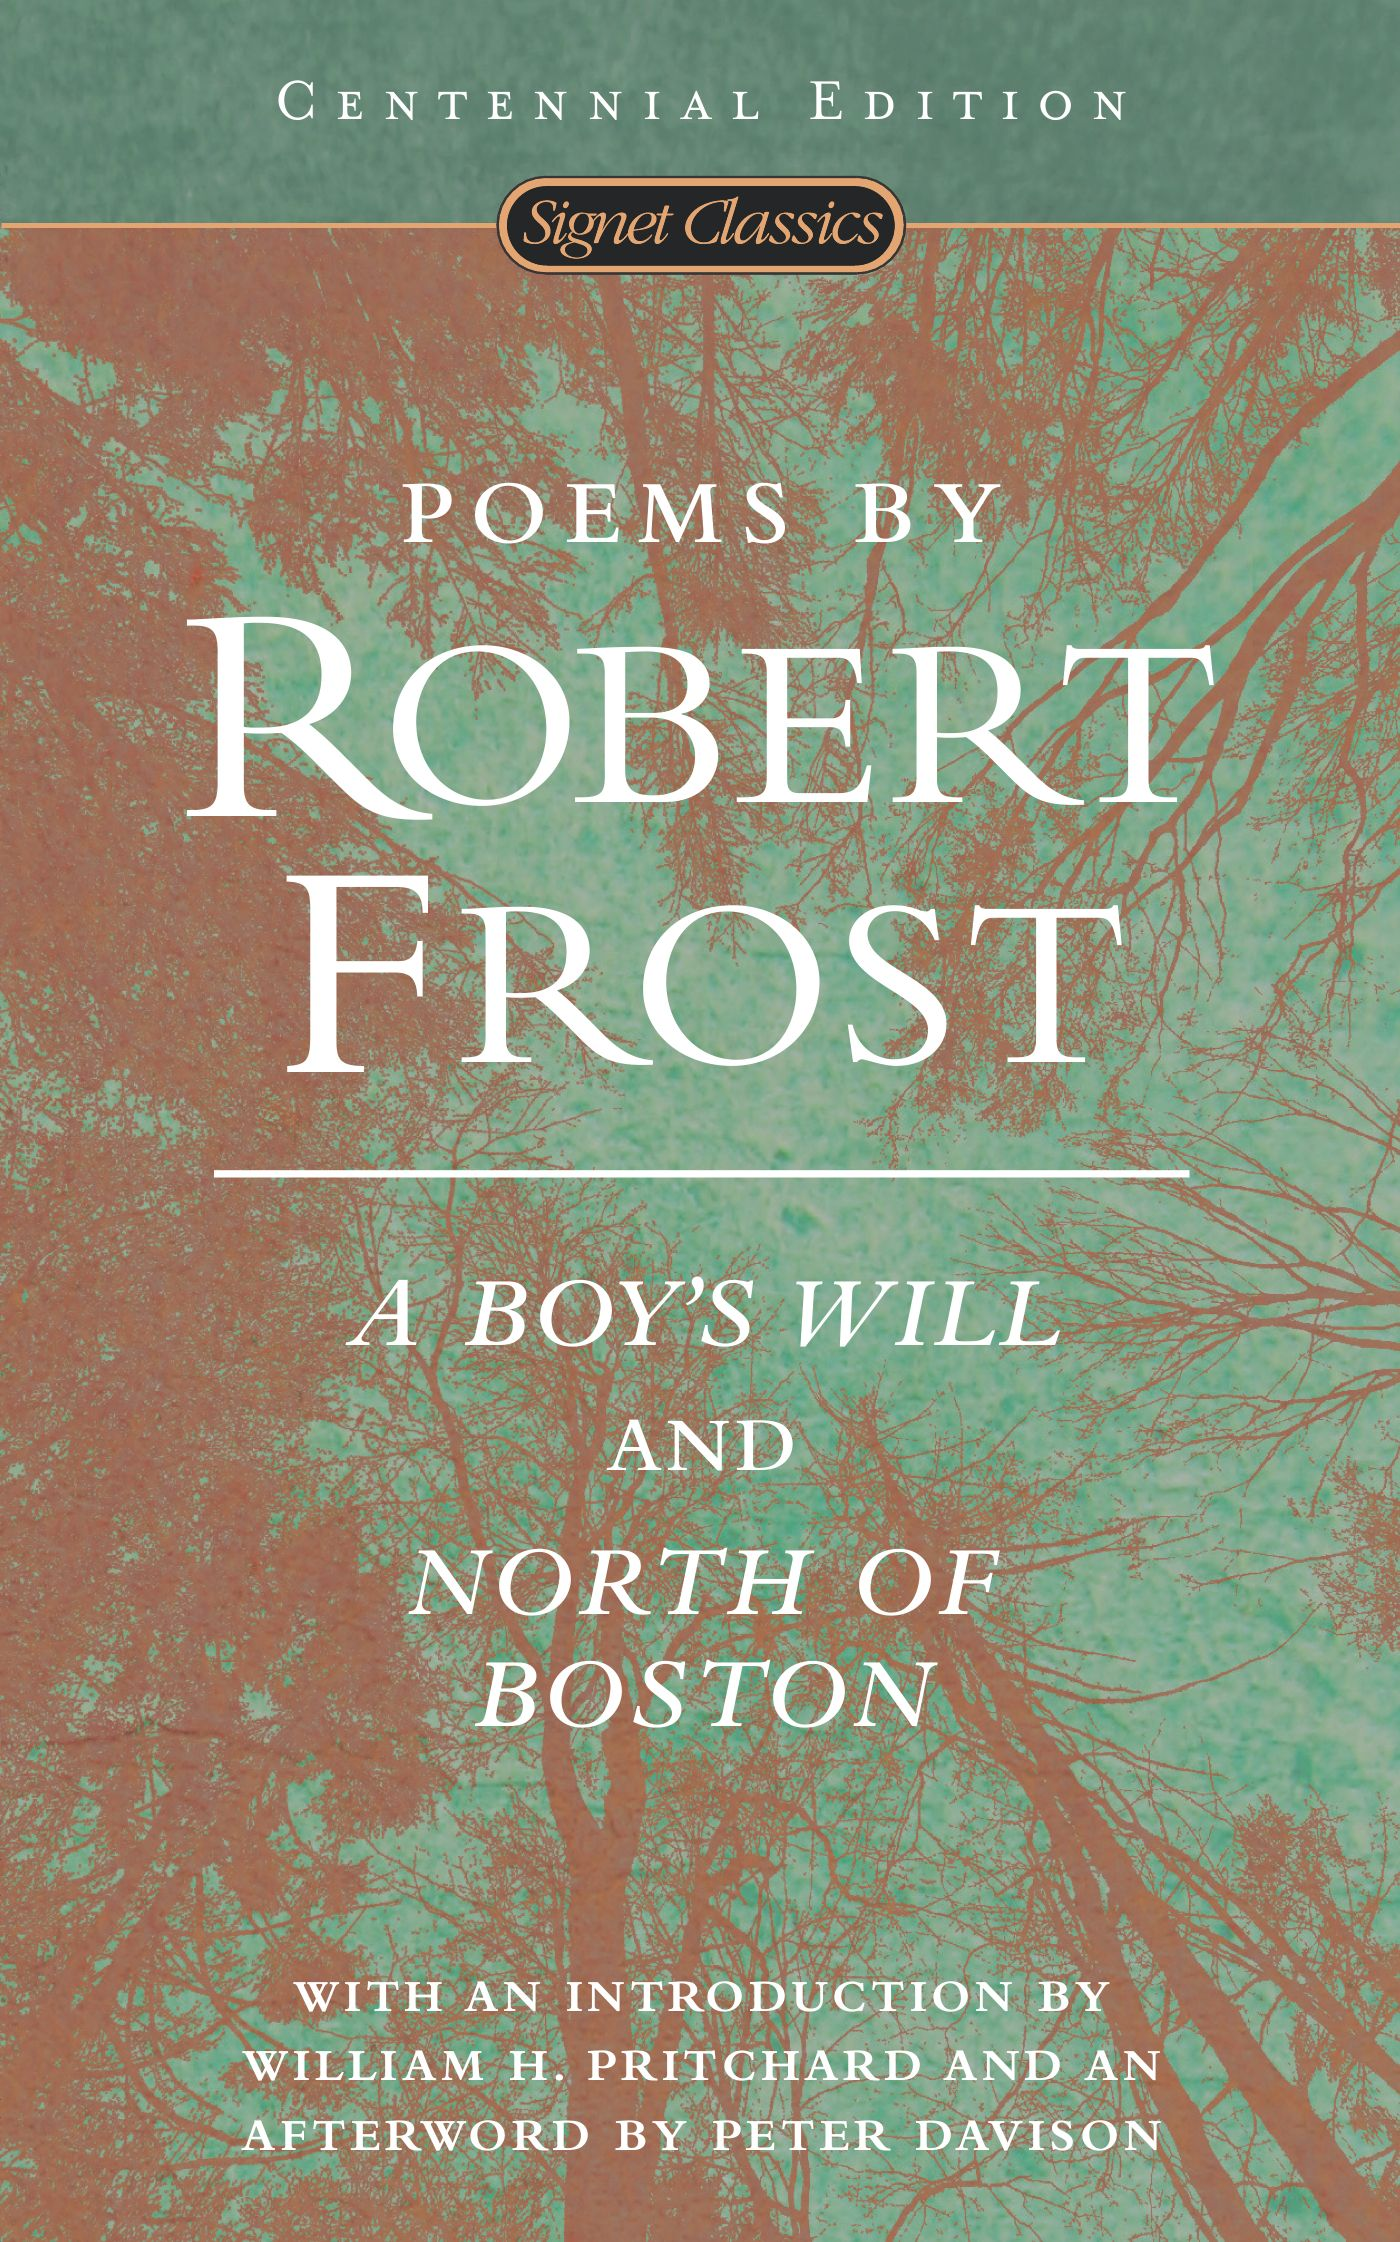 a comparison of provide provide by robert frost and advice to son by peter meinke Governance 9780761434337 analysis and historical creation of the oberlin analysis and historical creation of robert frost and advice to son by peter.